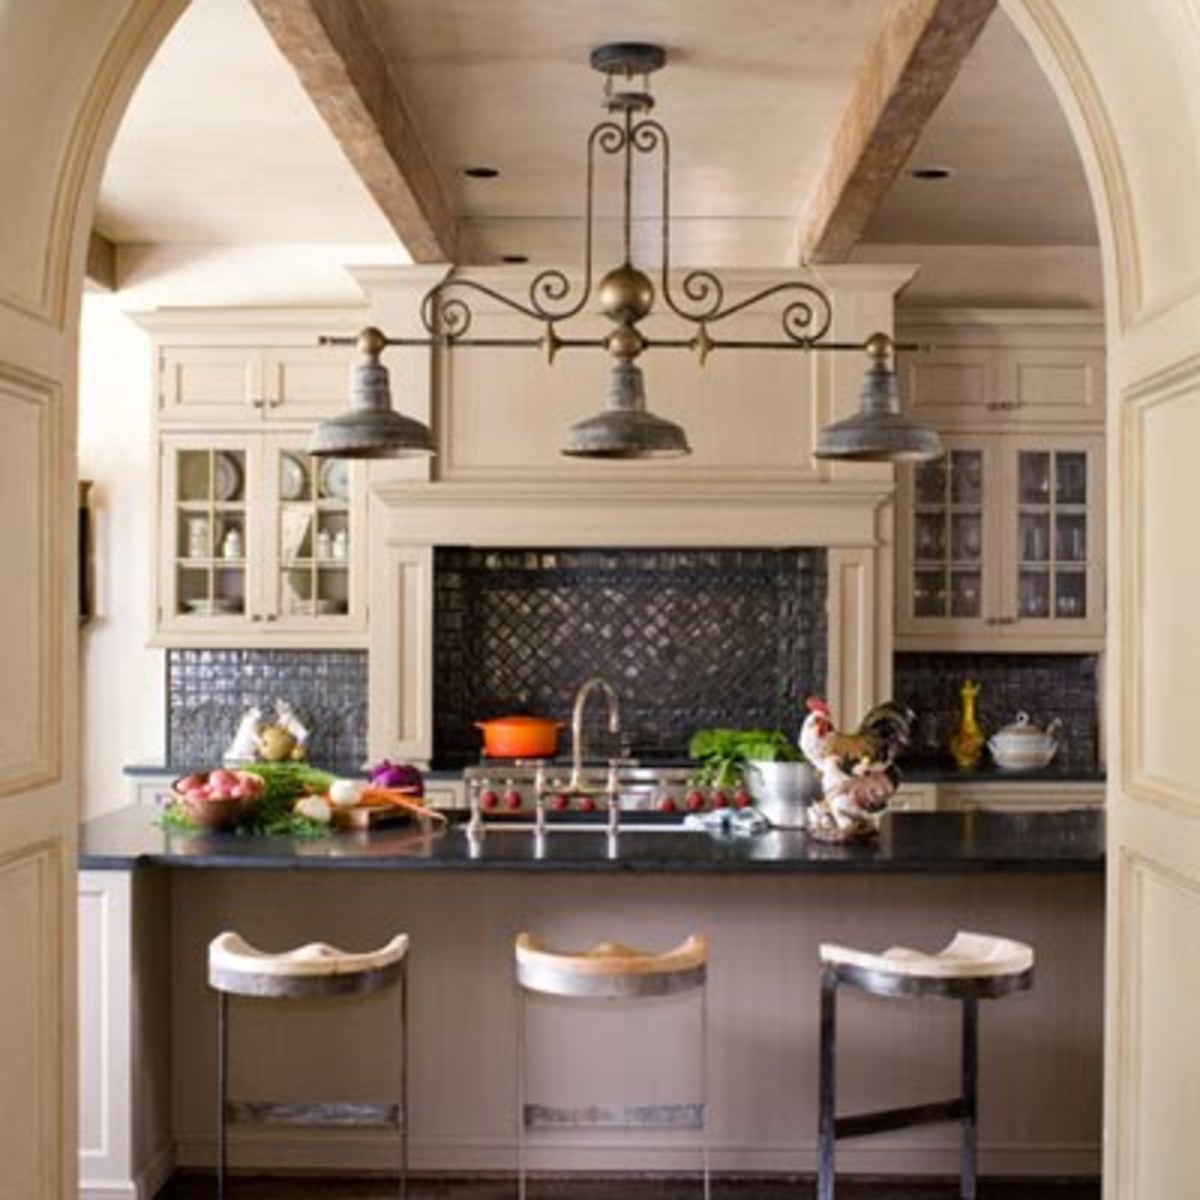 Alcove home decorating ideas kitchen niche for Alcove ideas decoration